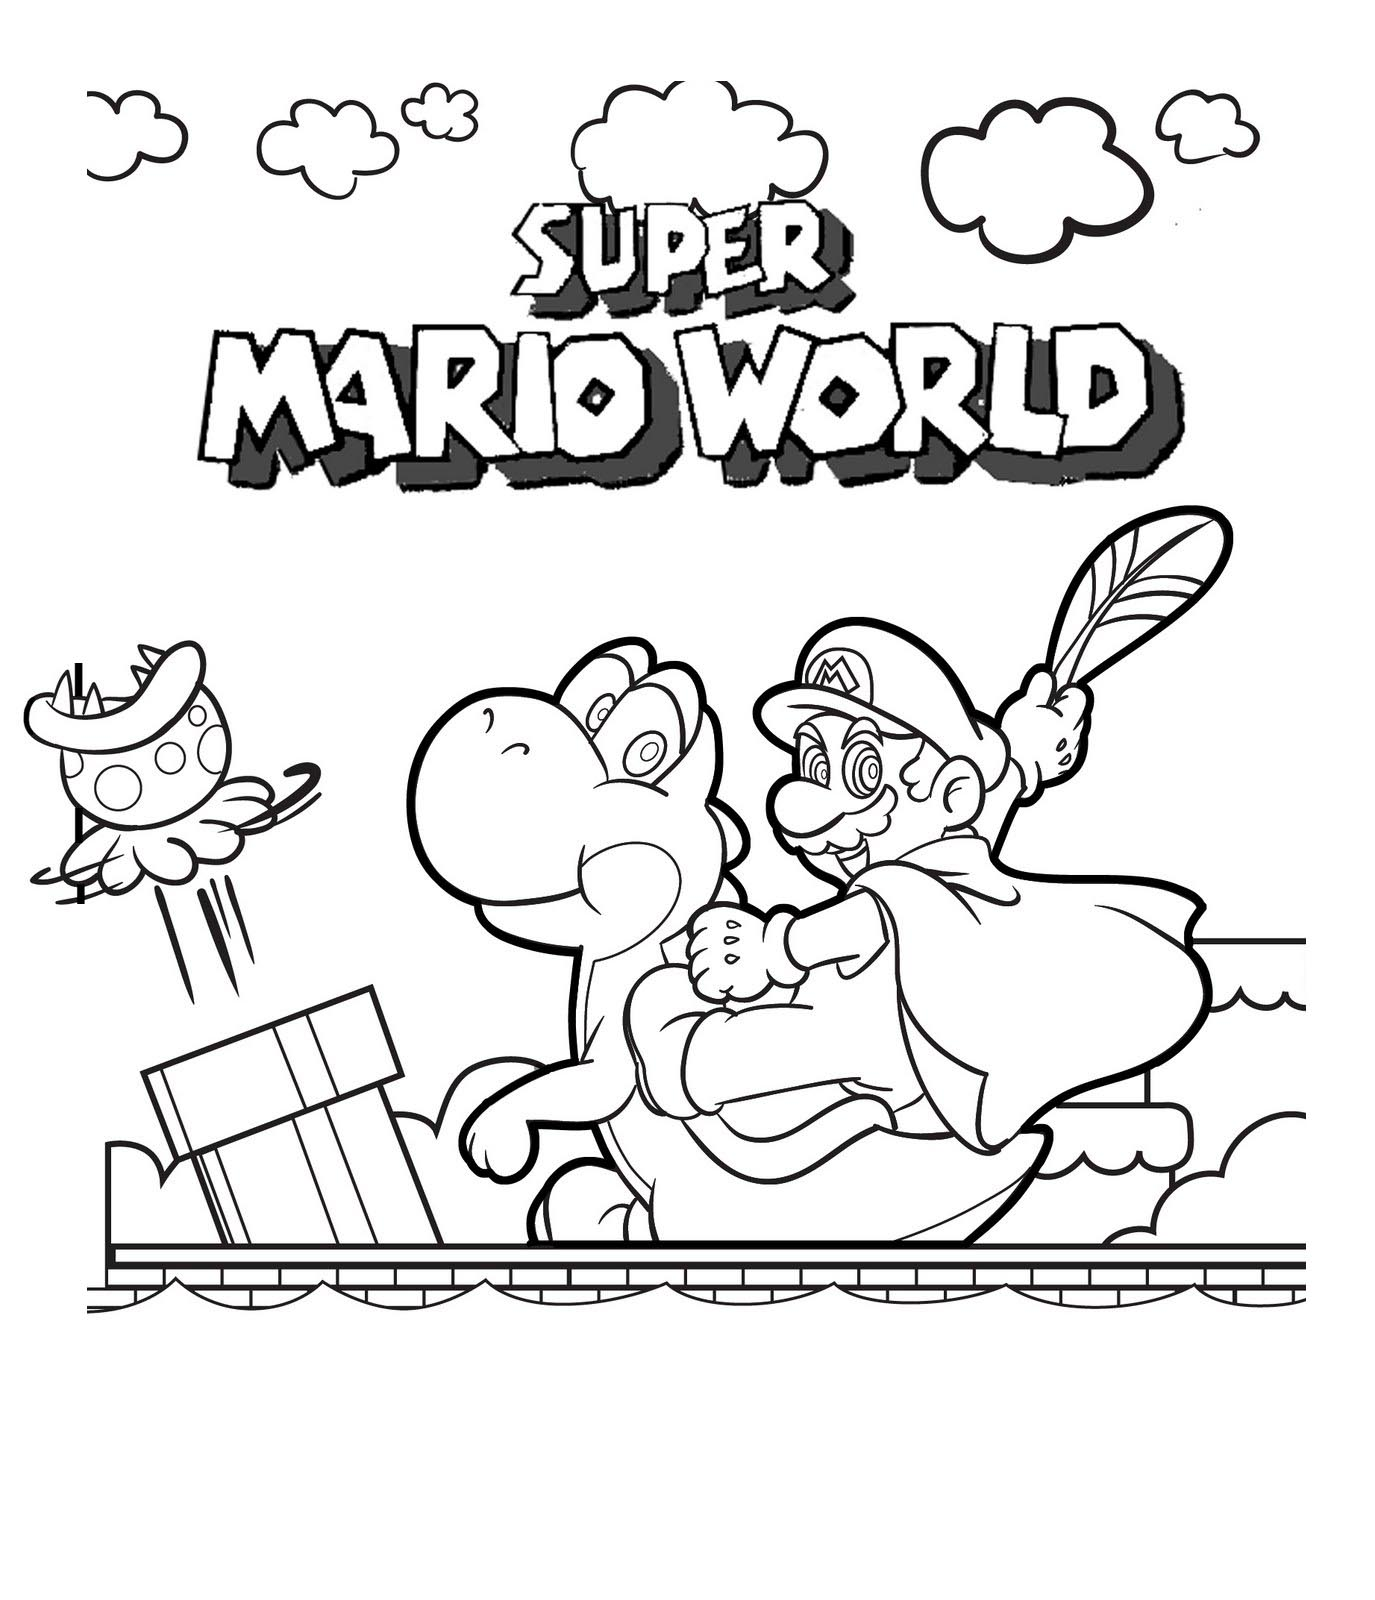 Clip Art Super Mario Printable Coloring Pages free printable mario coloring pages for kids super pages